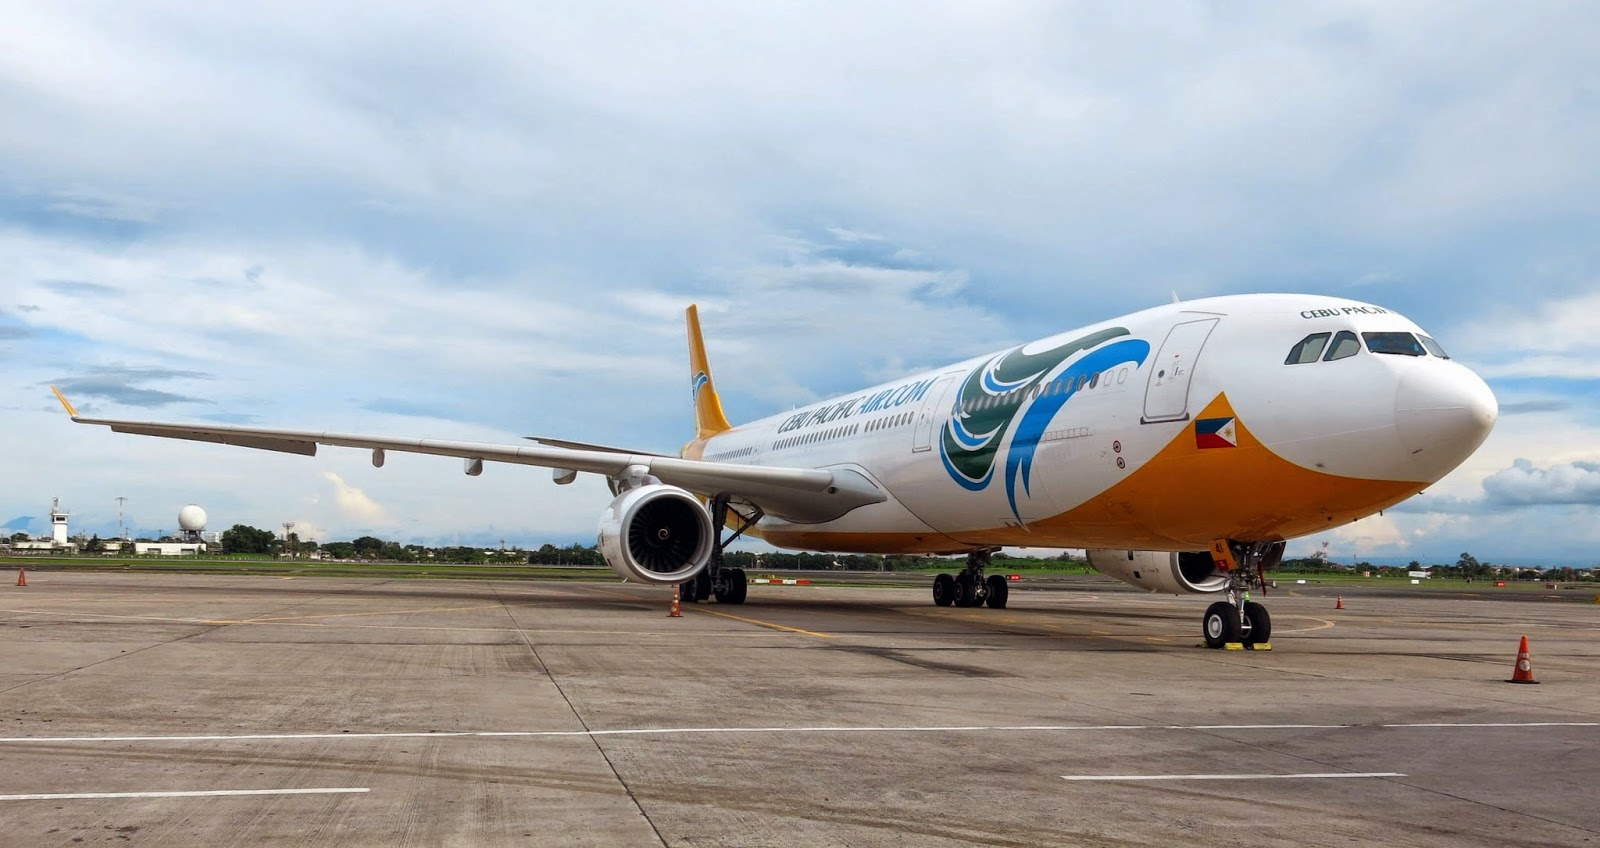 Cebu Pacific: Long Haul Flights to Kuwait and Australia Start in September